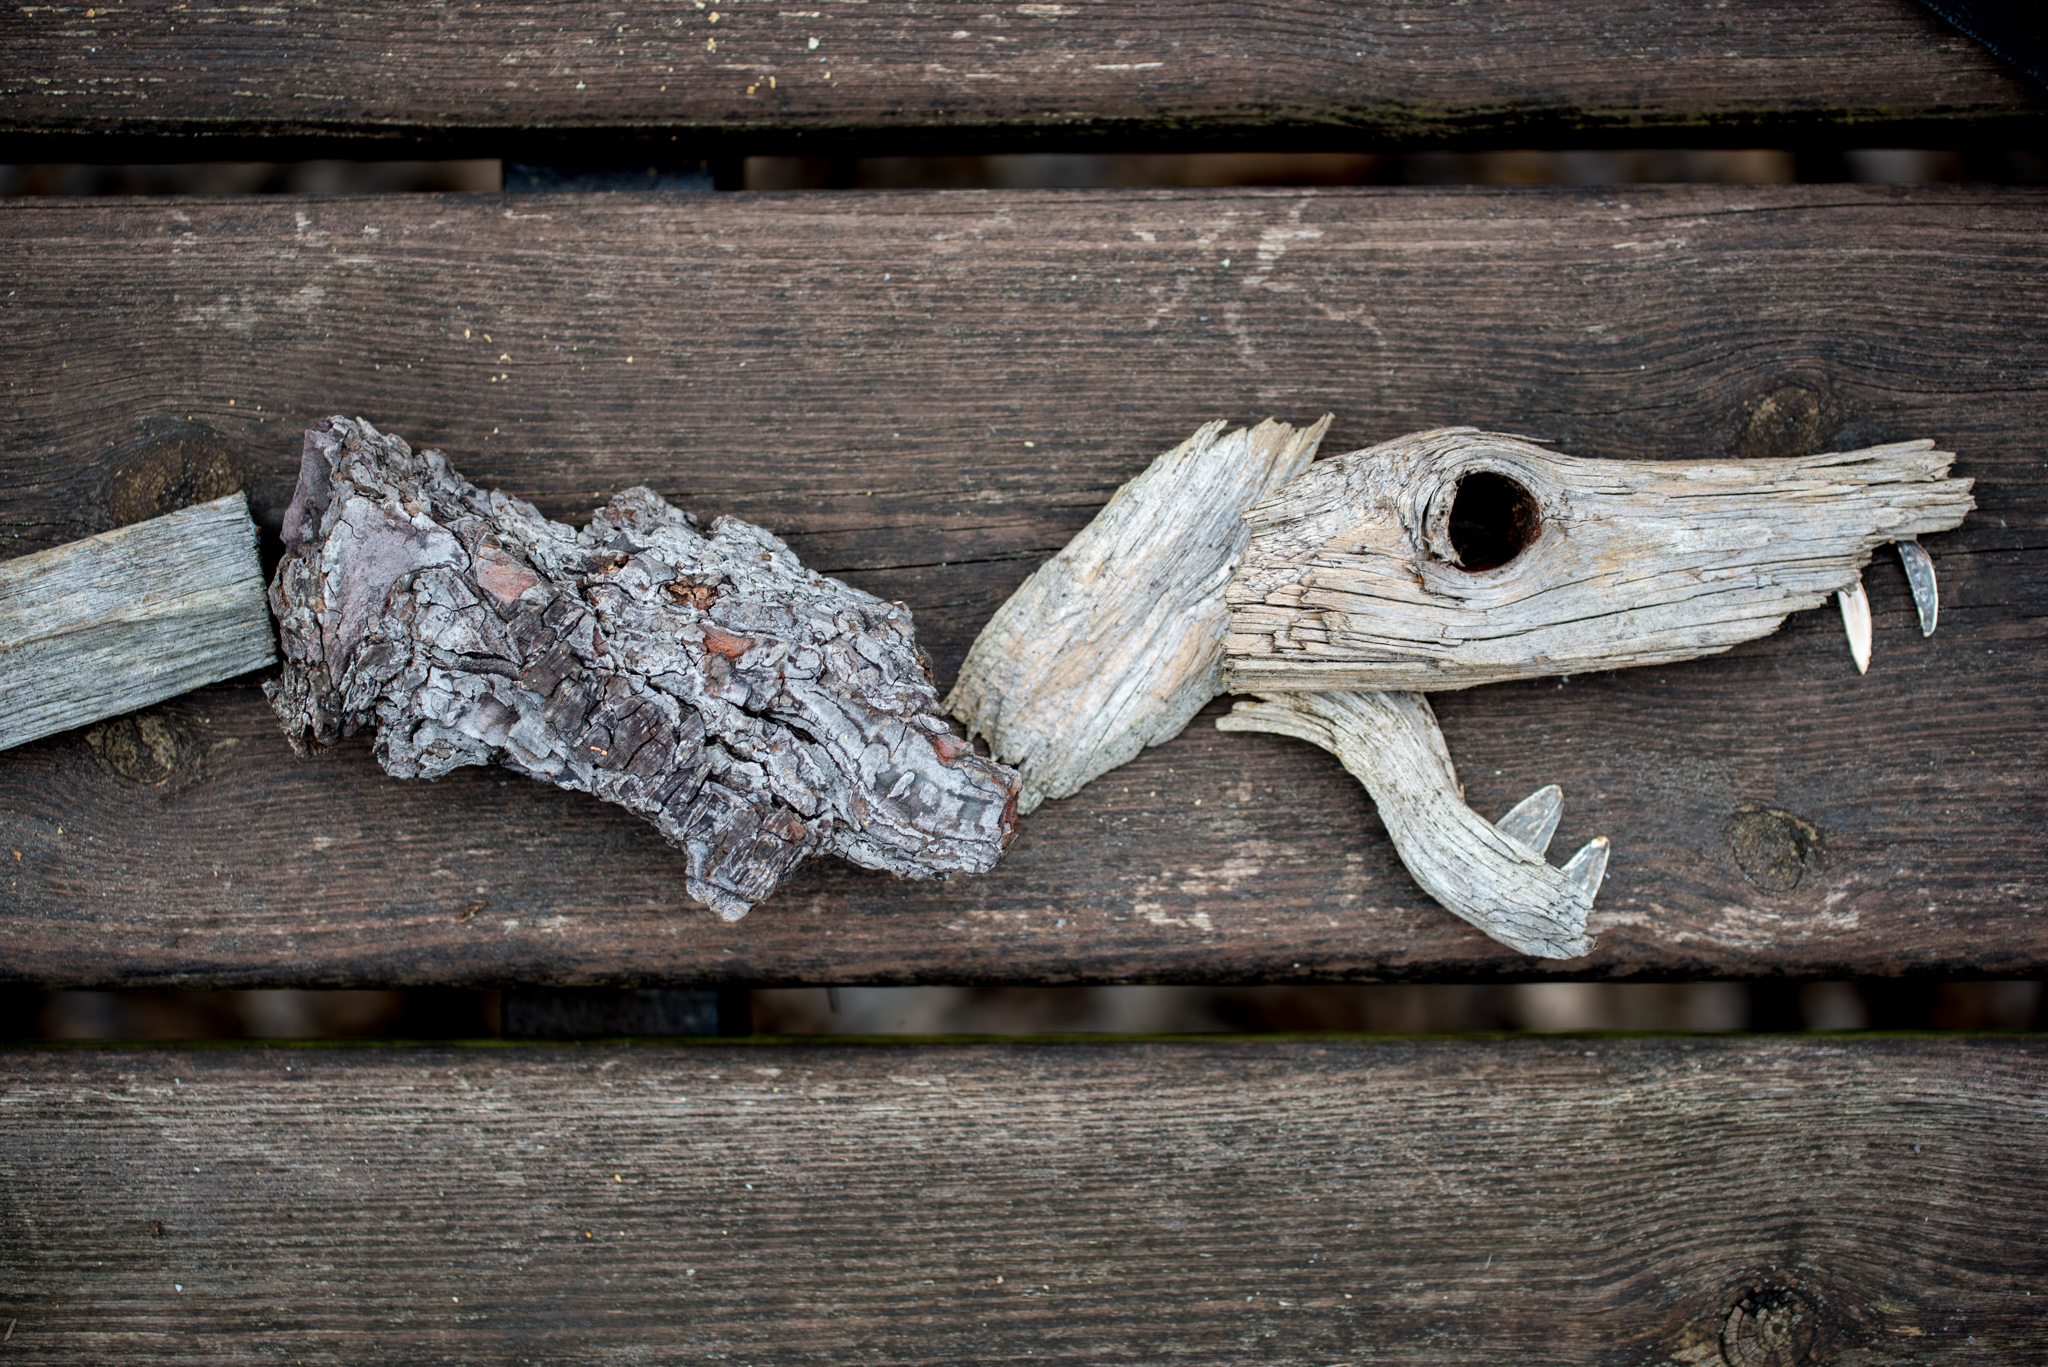 photo of snake made from wood chips by Kelly Crull